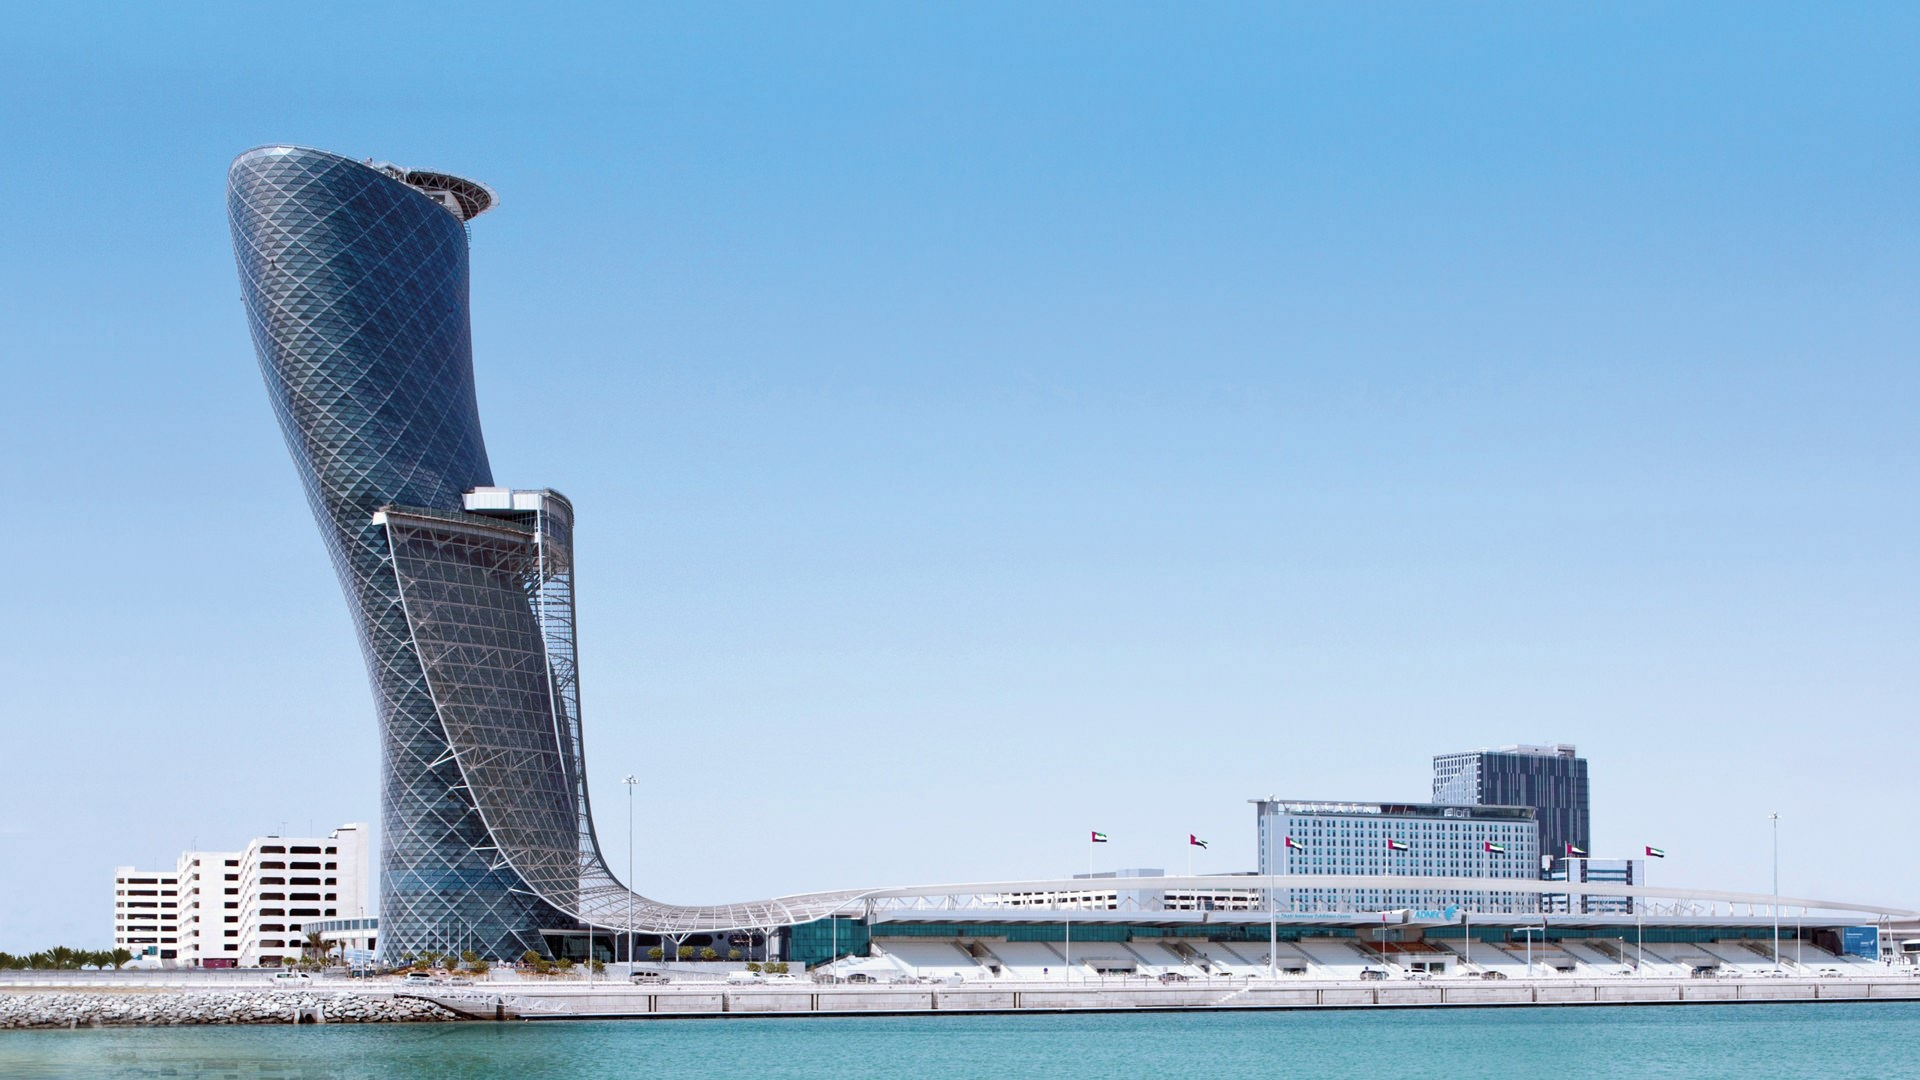 Abu Dhabi Exhibition Centre